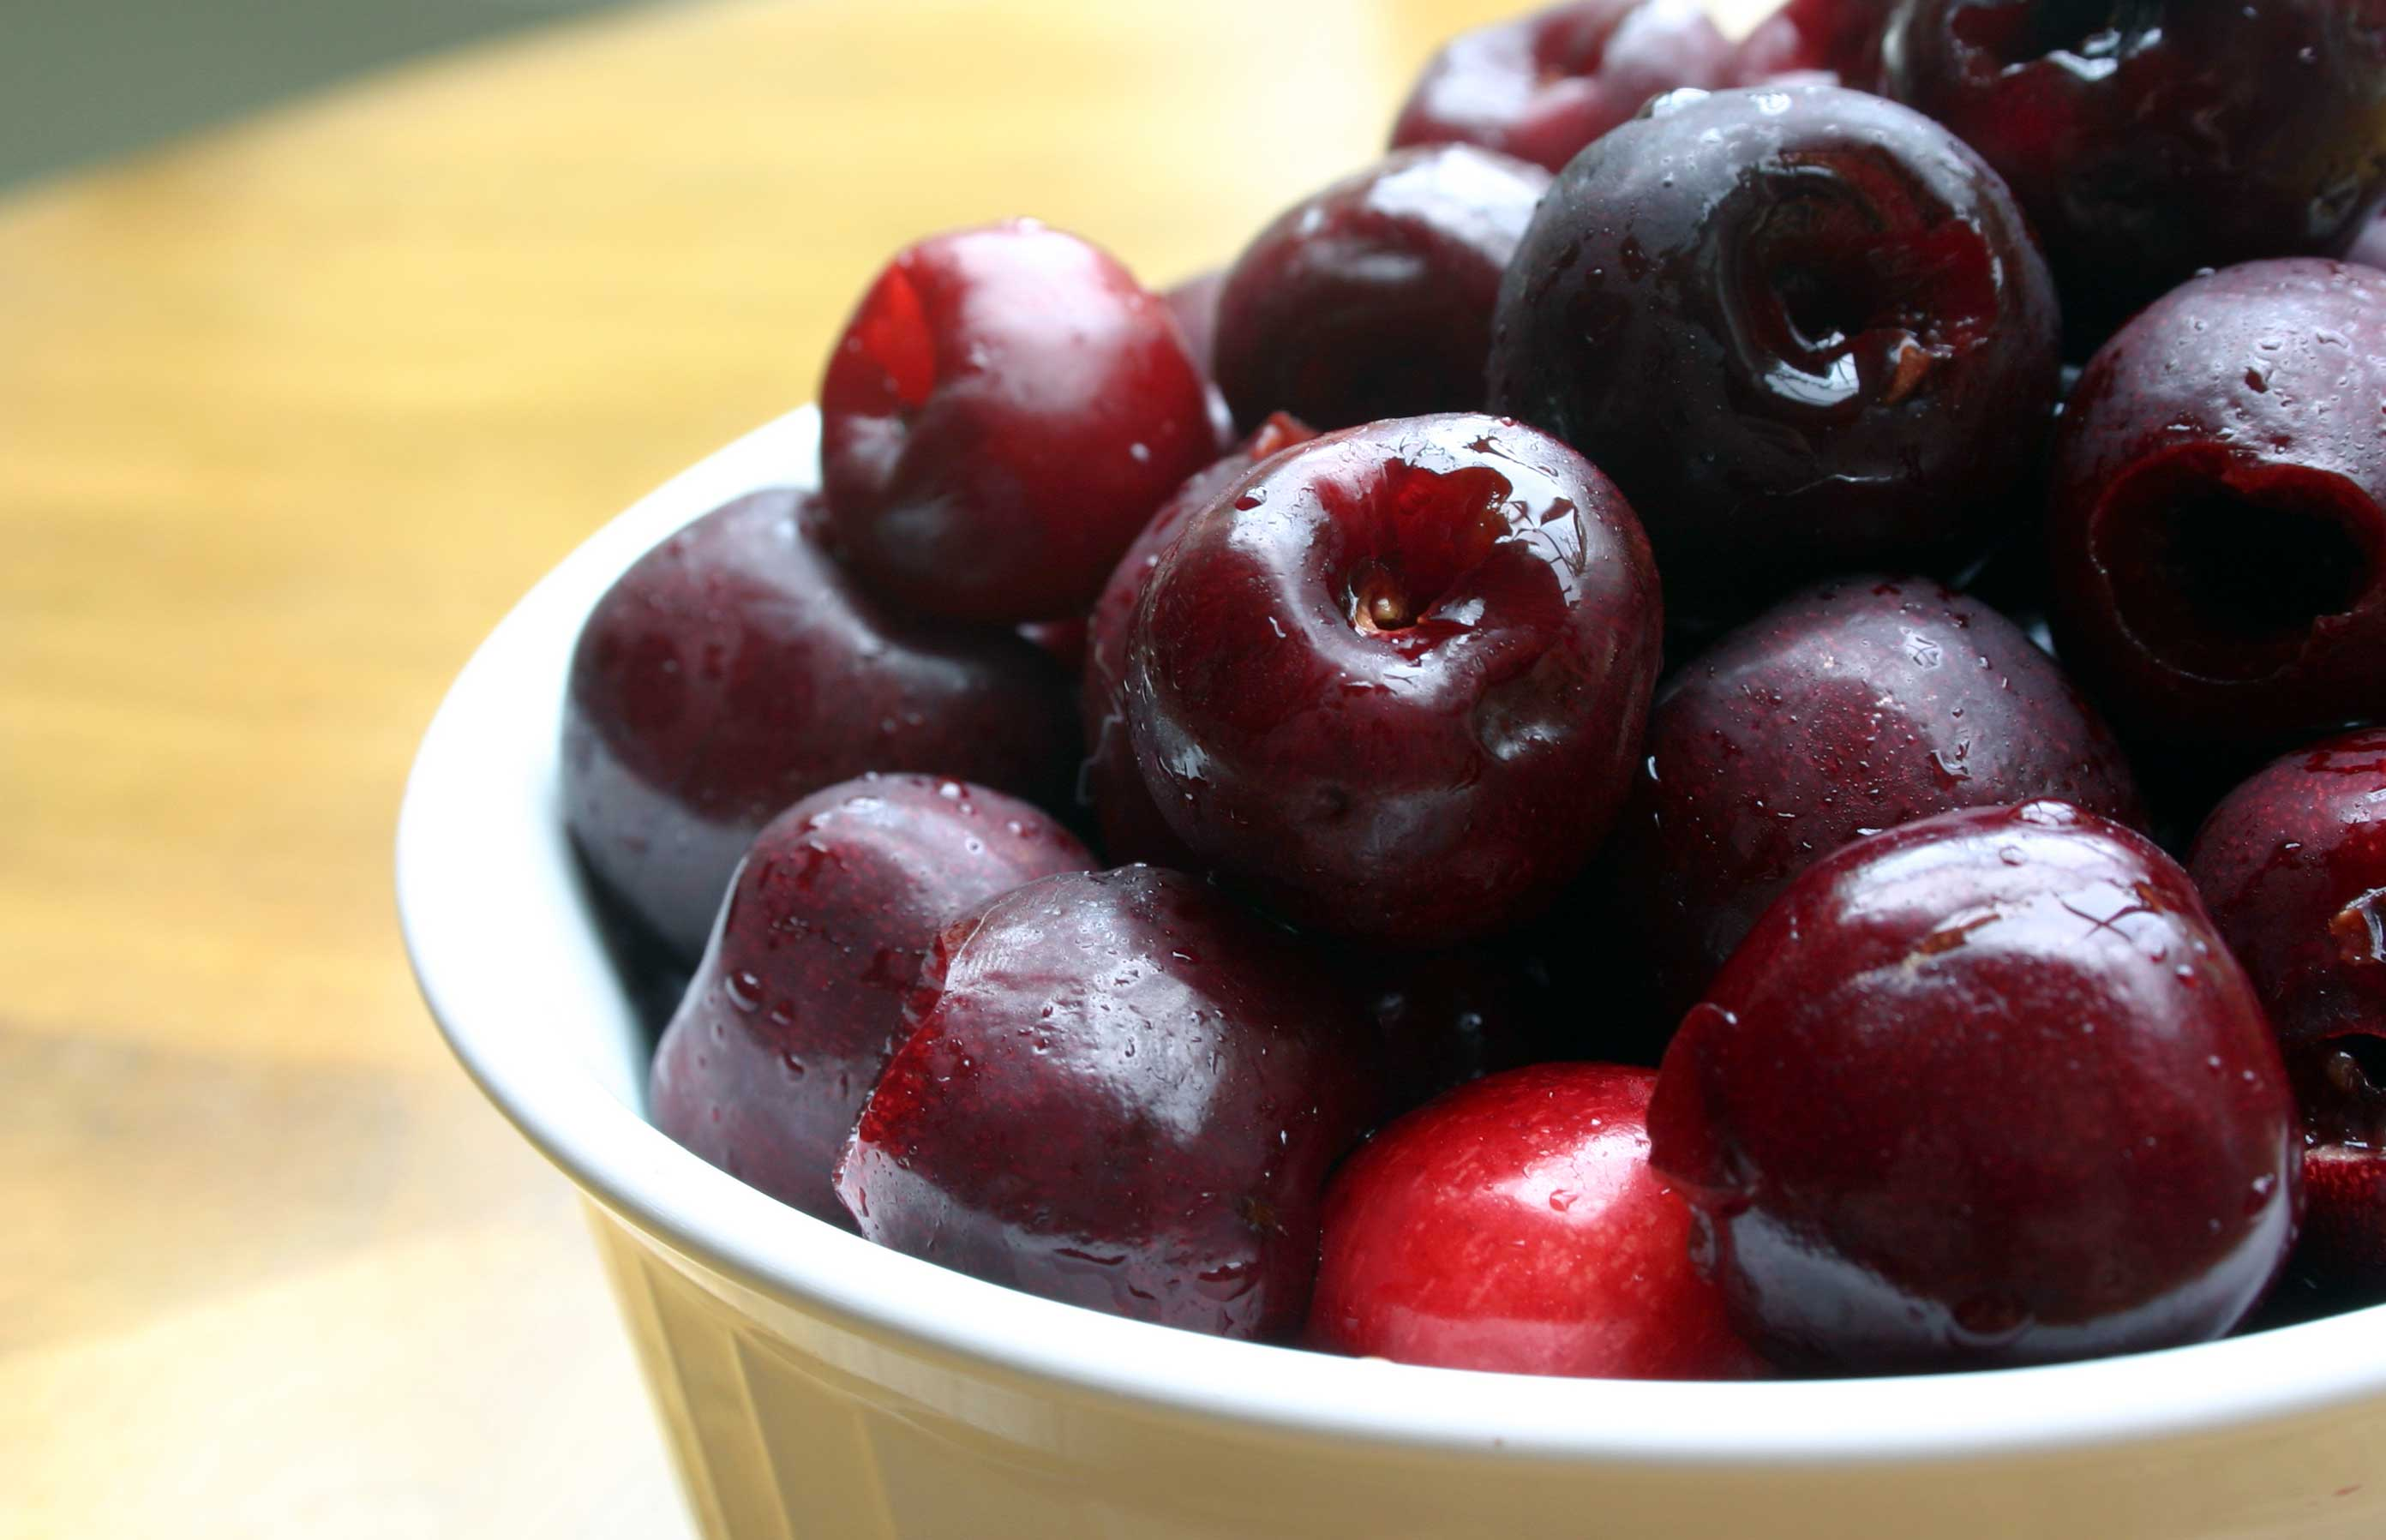 Life is Just a Bowl of Cherries - Even Better Without The Pits